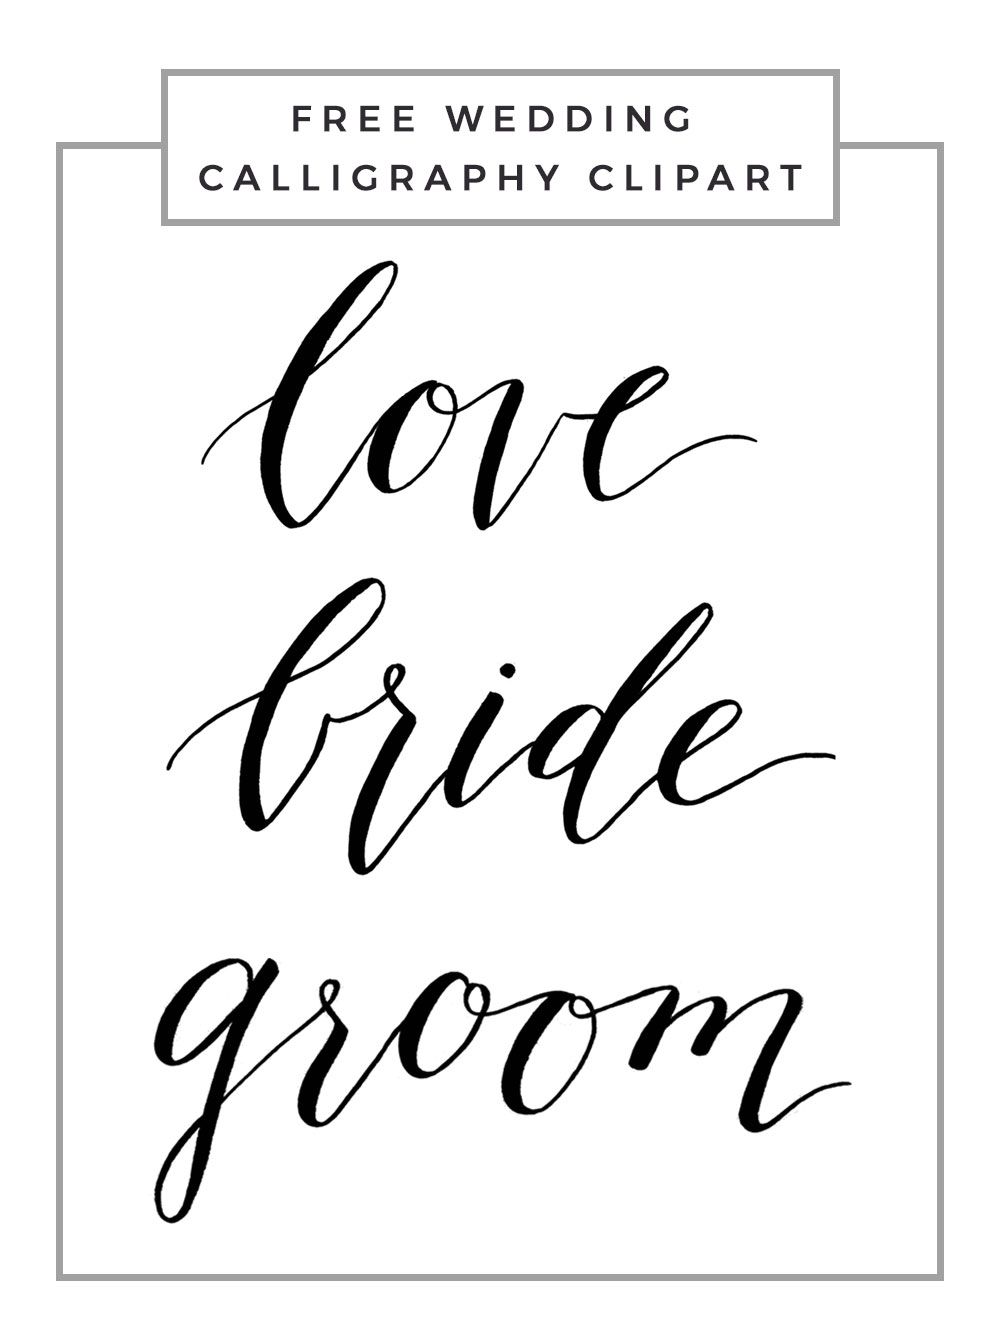 Wedding Calligraphy Font Calligraphy Fonts Alphabets